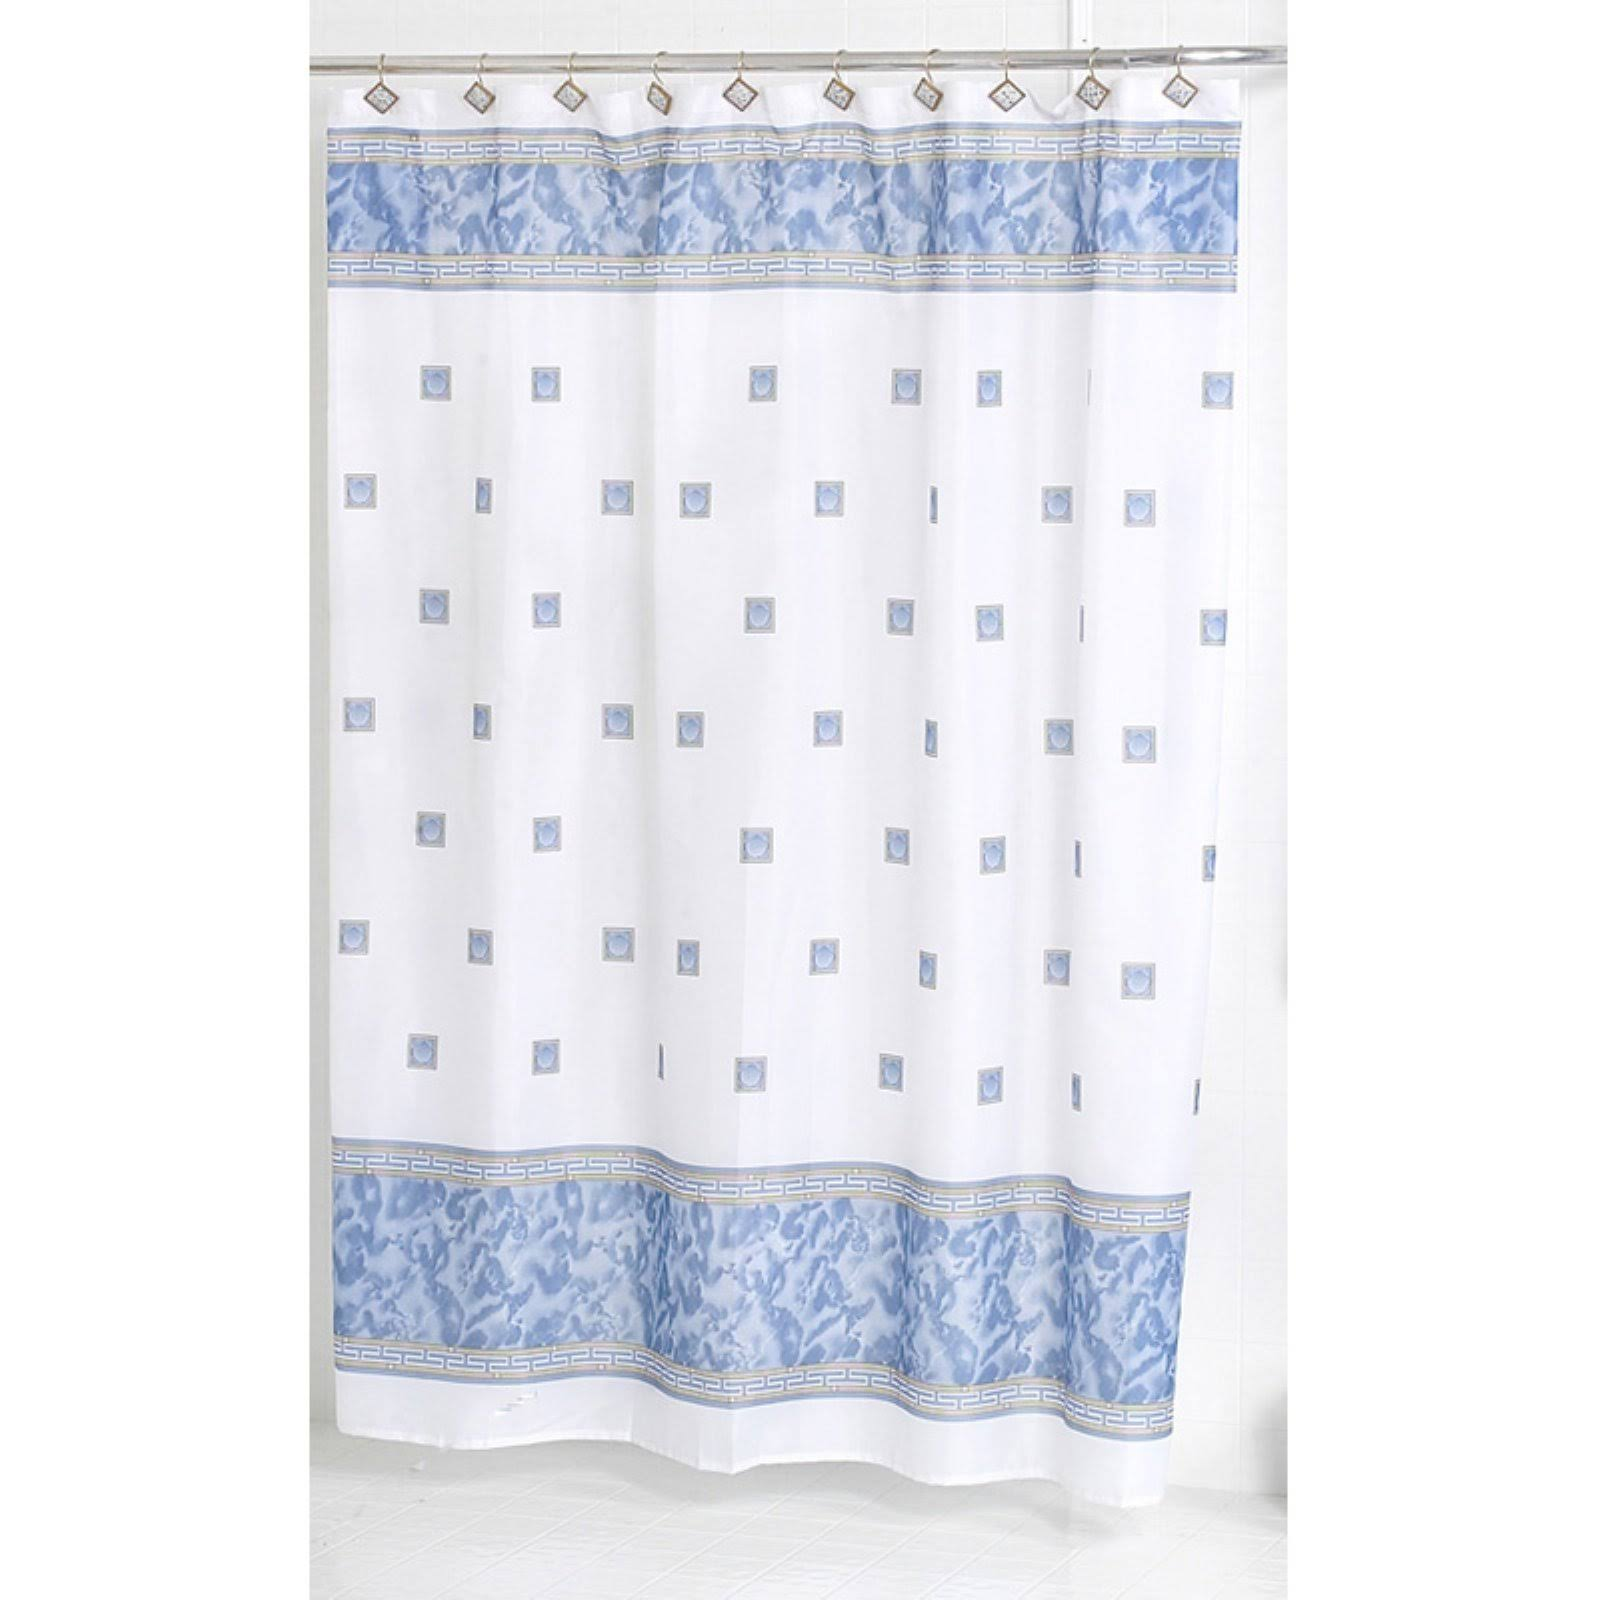 Carnation Home Windsor Fabric Shower Curtain in Slate